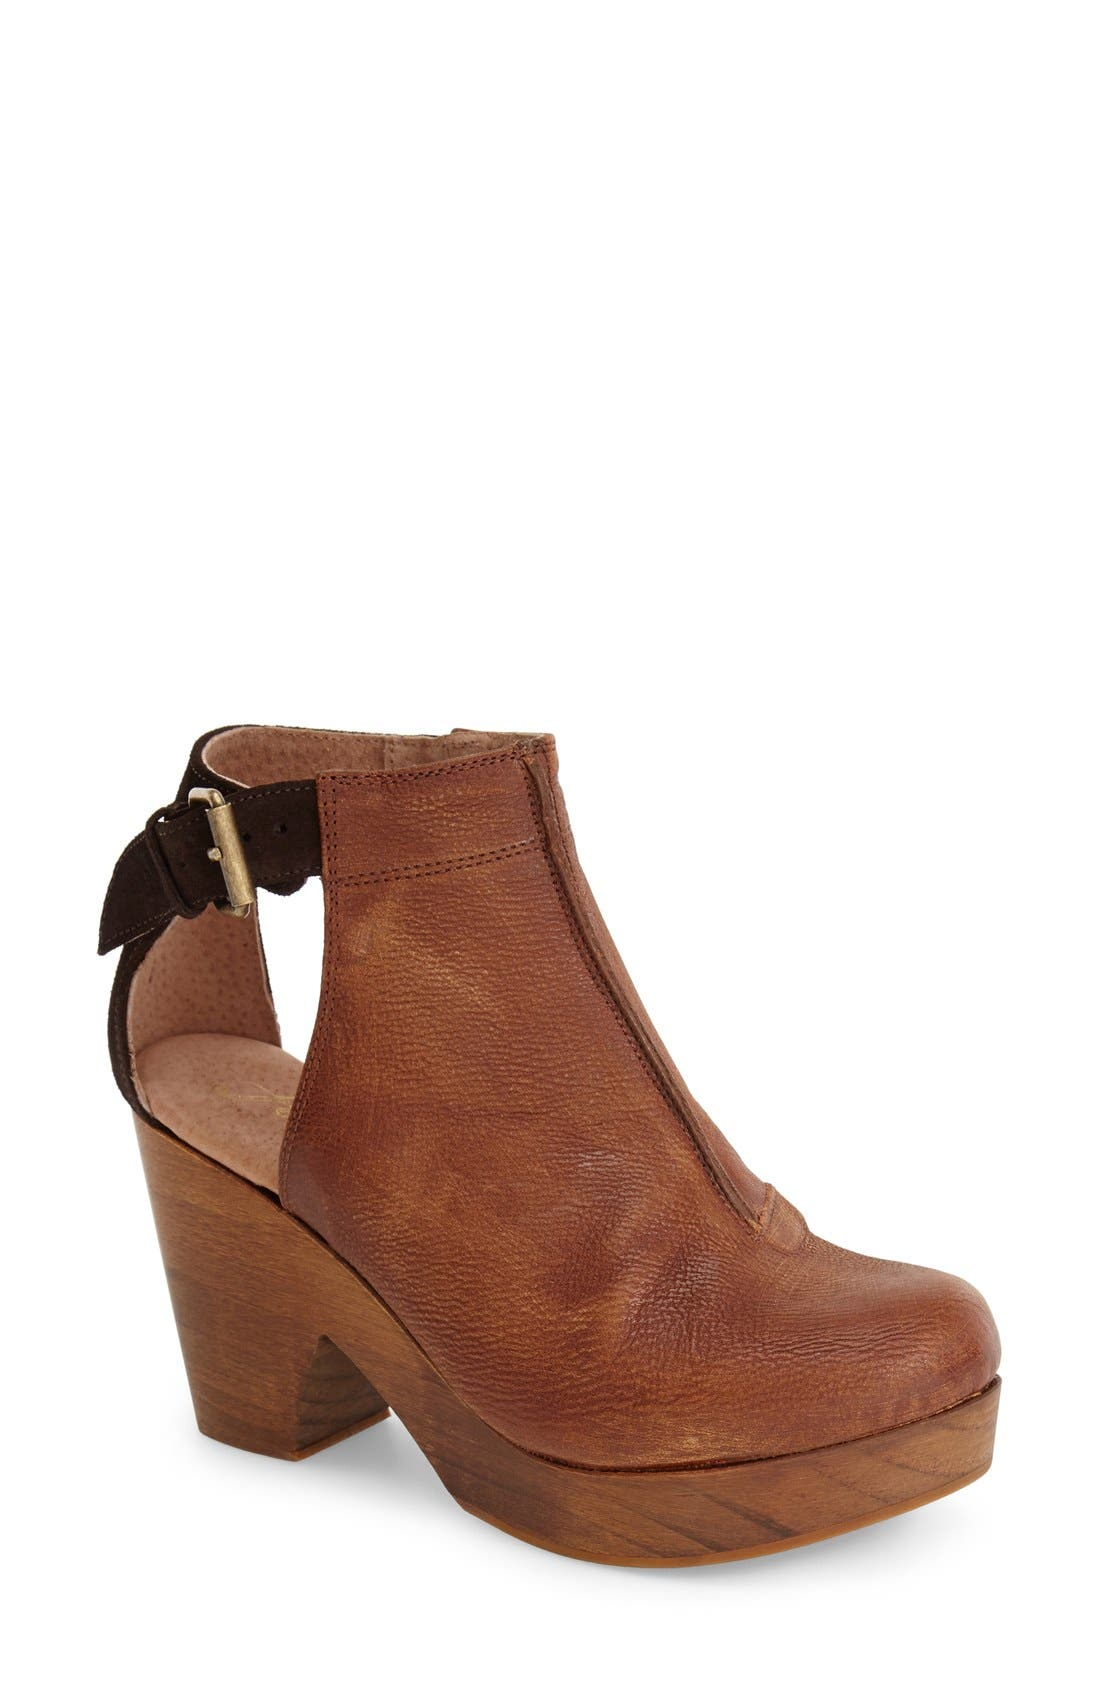 Alternate Image 1 Selected - Free People 'Amber Orchard' Cutout Bootie (Women)